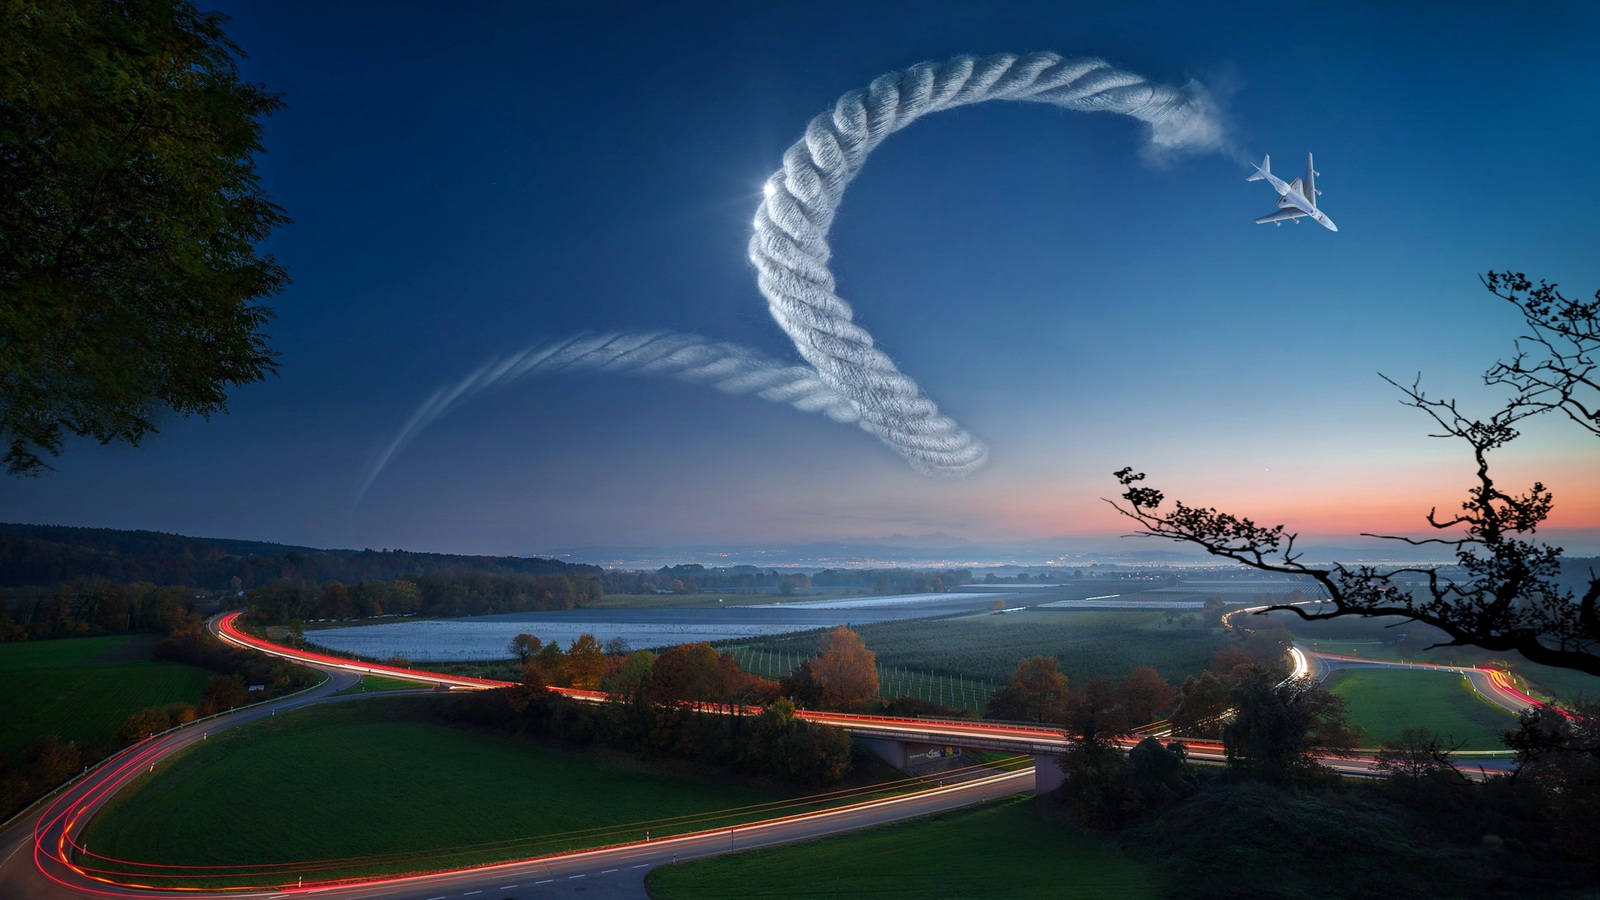 fantasy-landscape-aircraft-twilight-f1.jpg